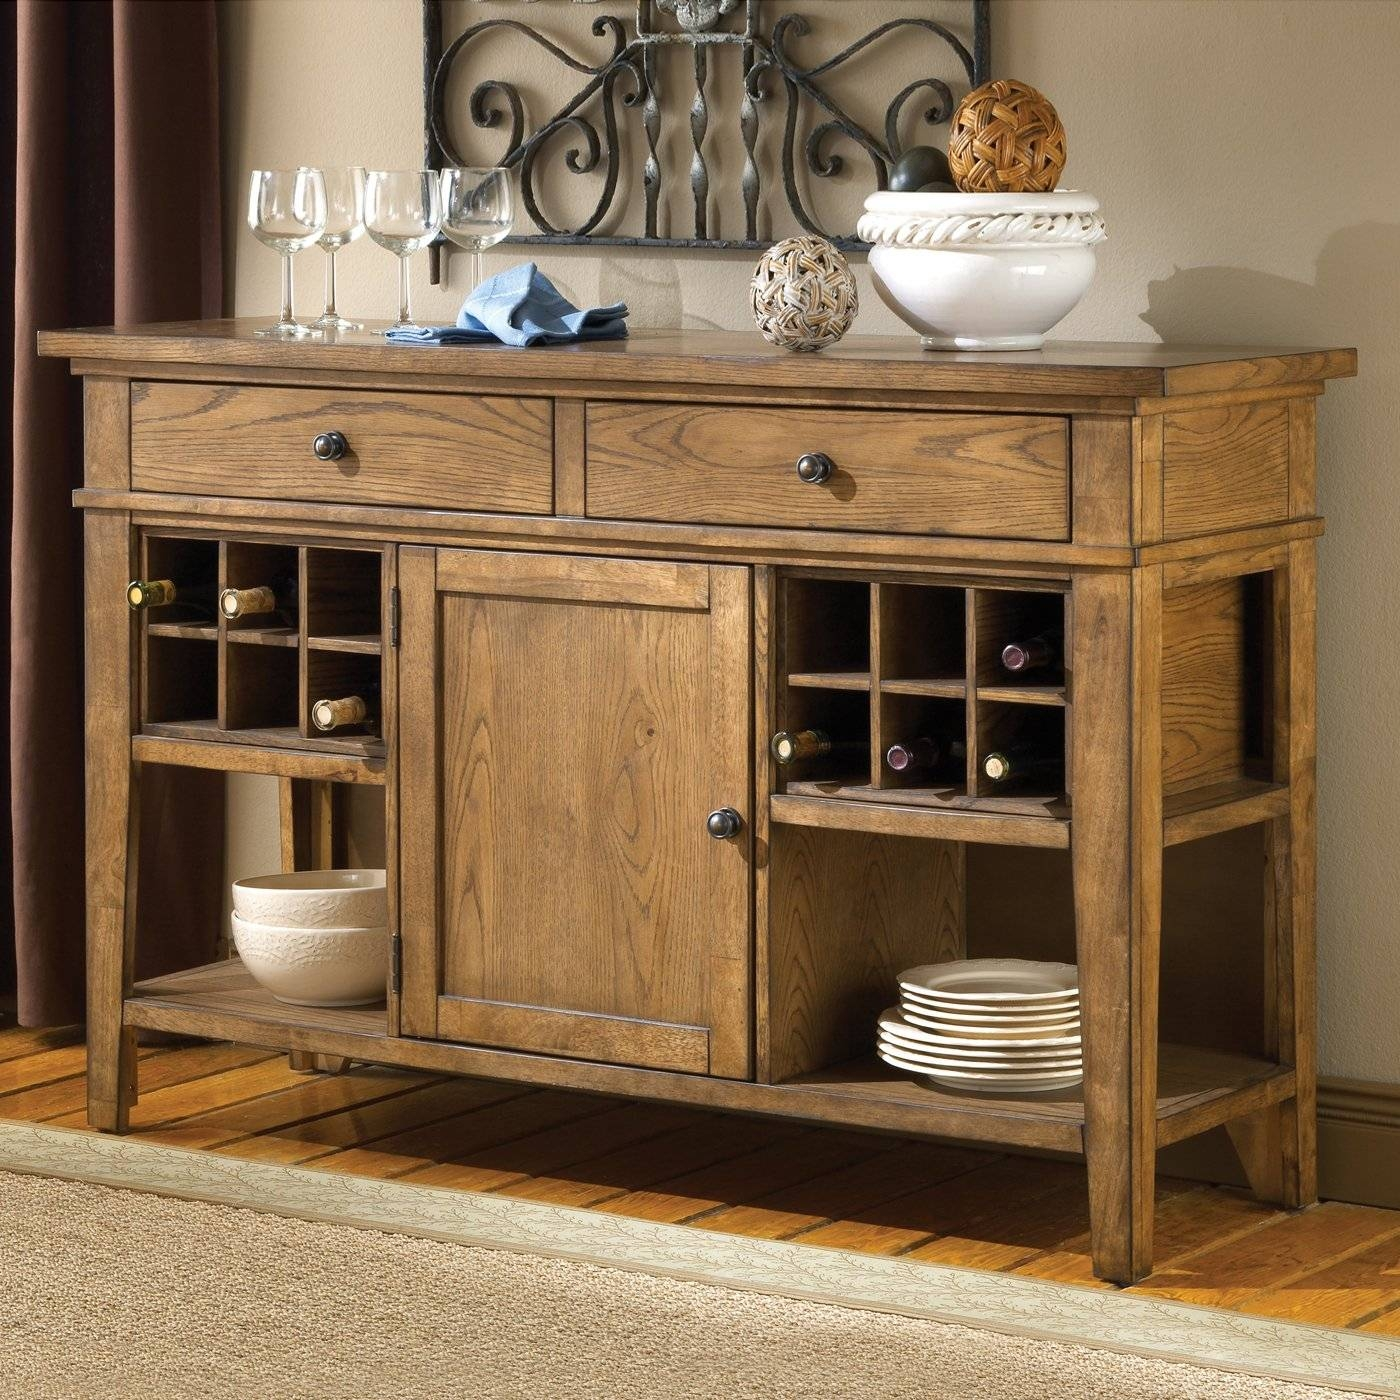 Traditional Dining Room Sideboards And Buffets : Rustic Dining Intended For Most Current Rustic Sideboards And Buffets (#15 of 15)